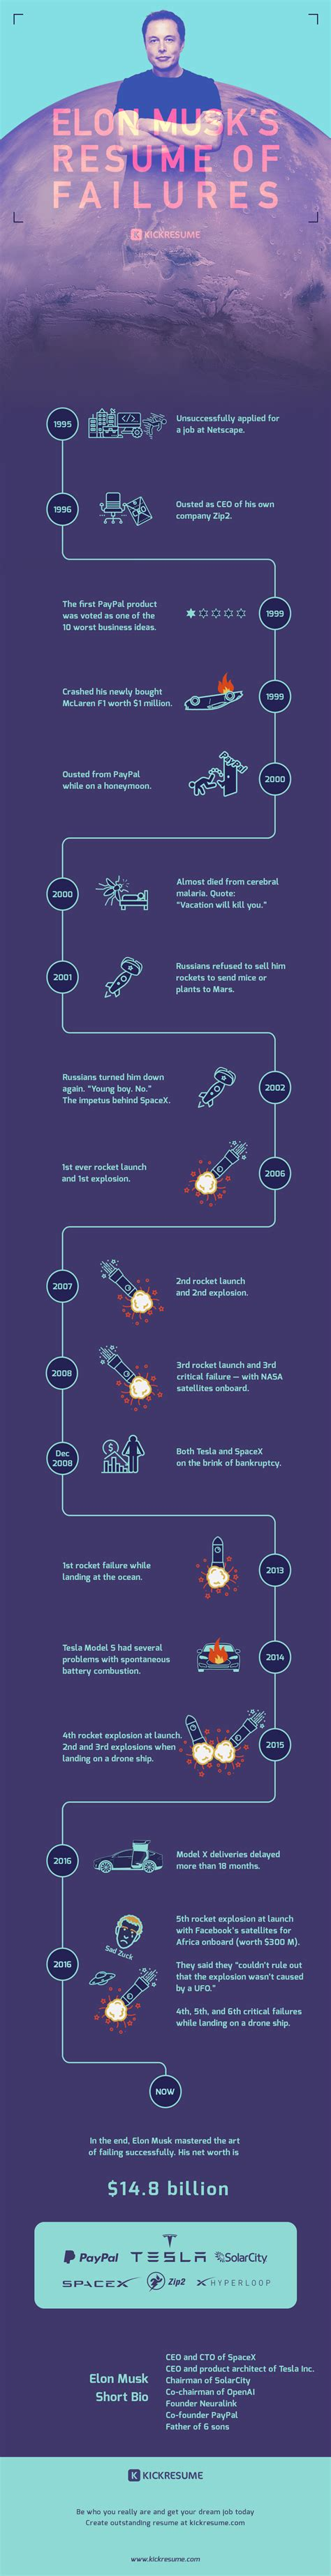 elon musk timeline infographic a timeline of elon musk s long list of failures